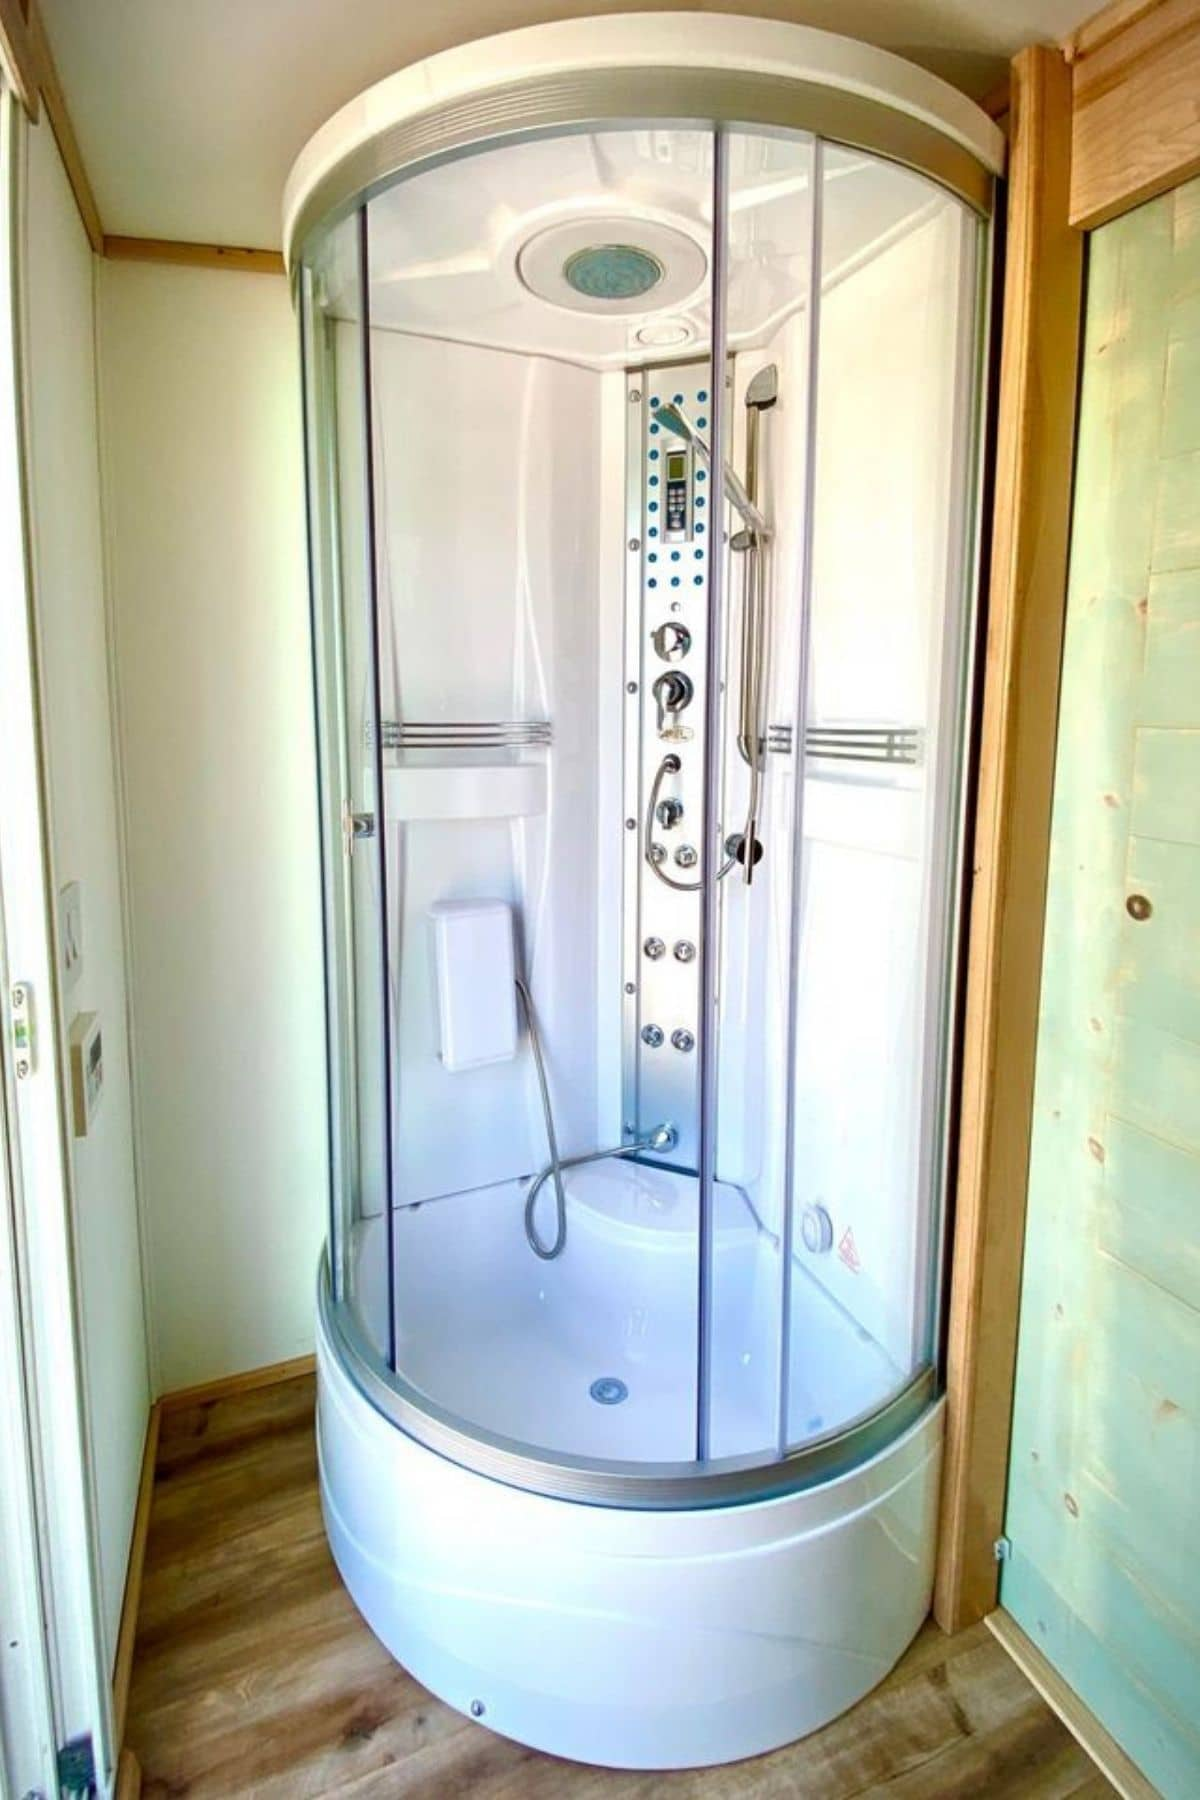 white corner rounded shower stall with multi-jet shower head system